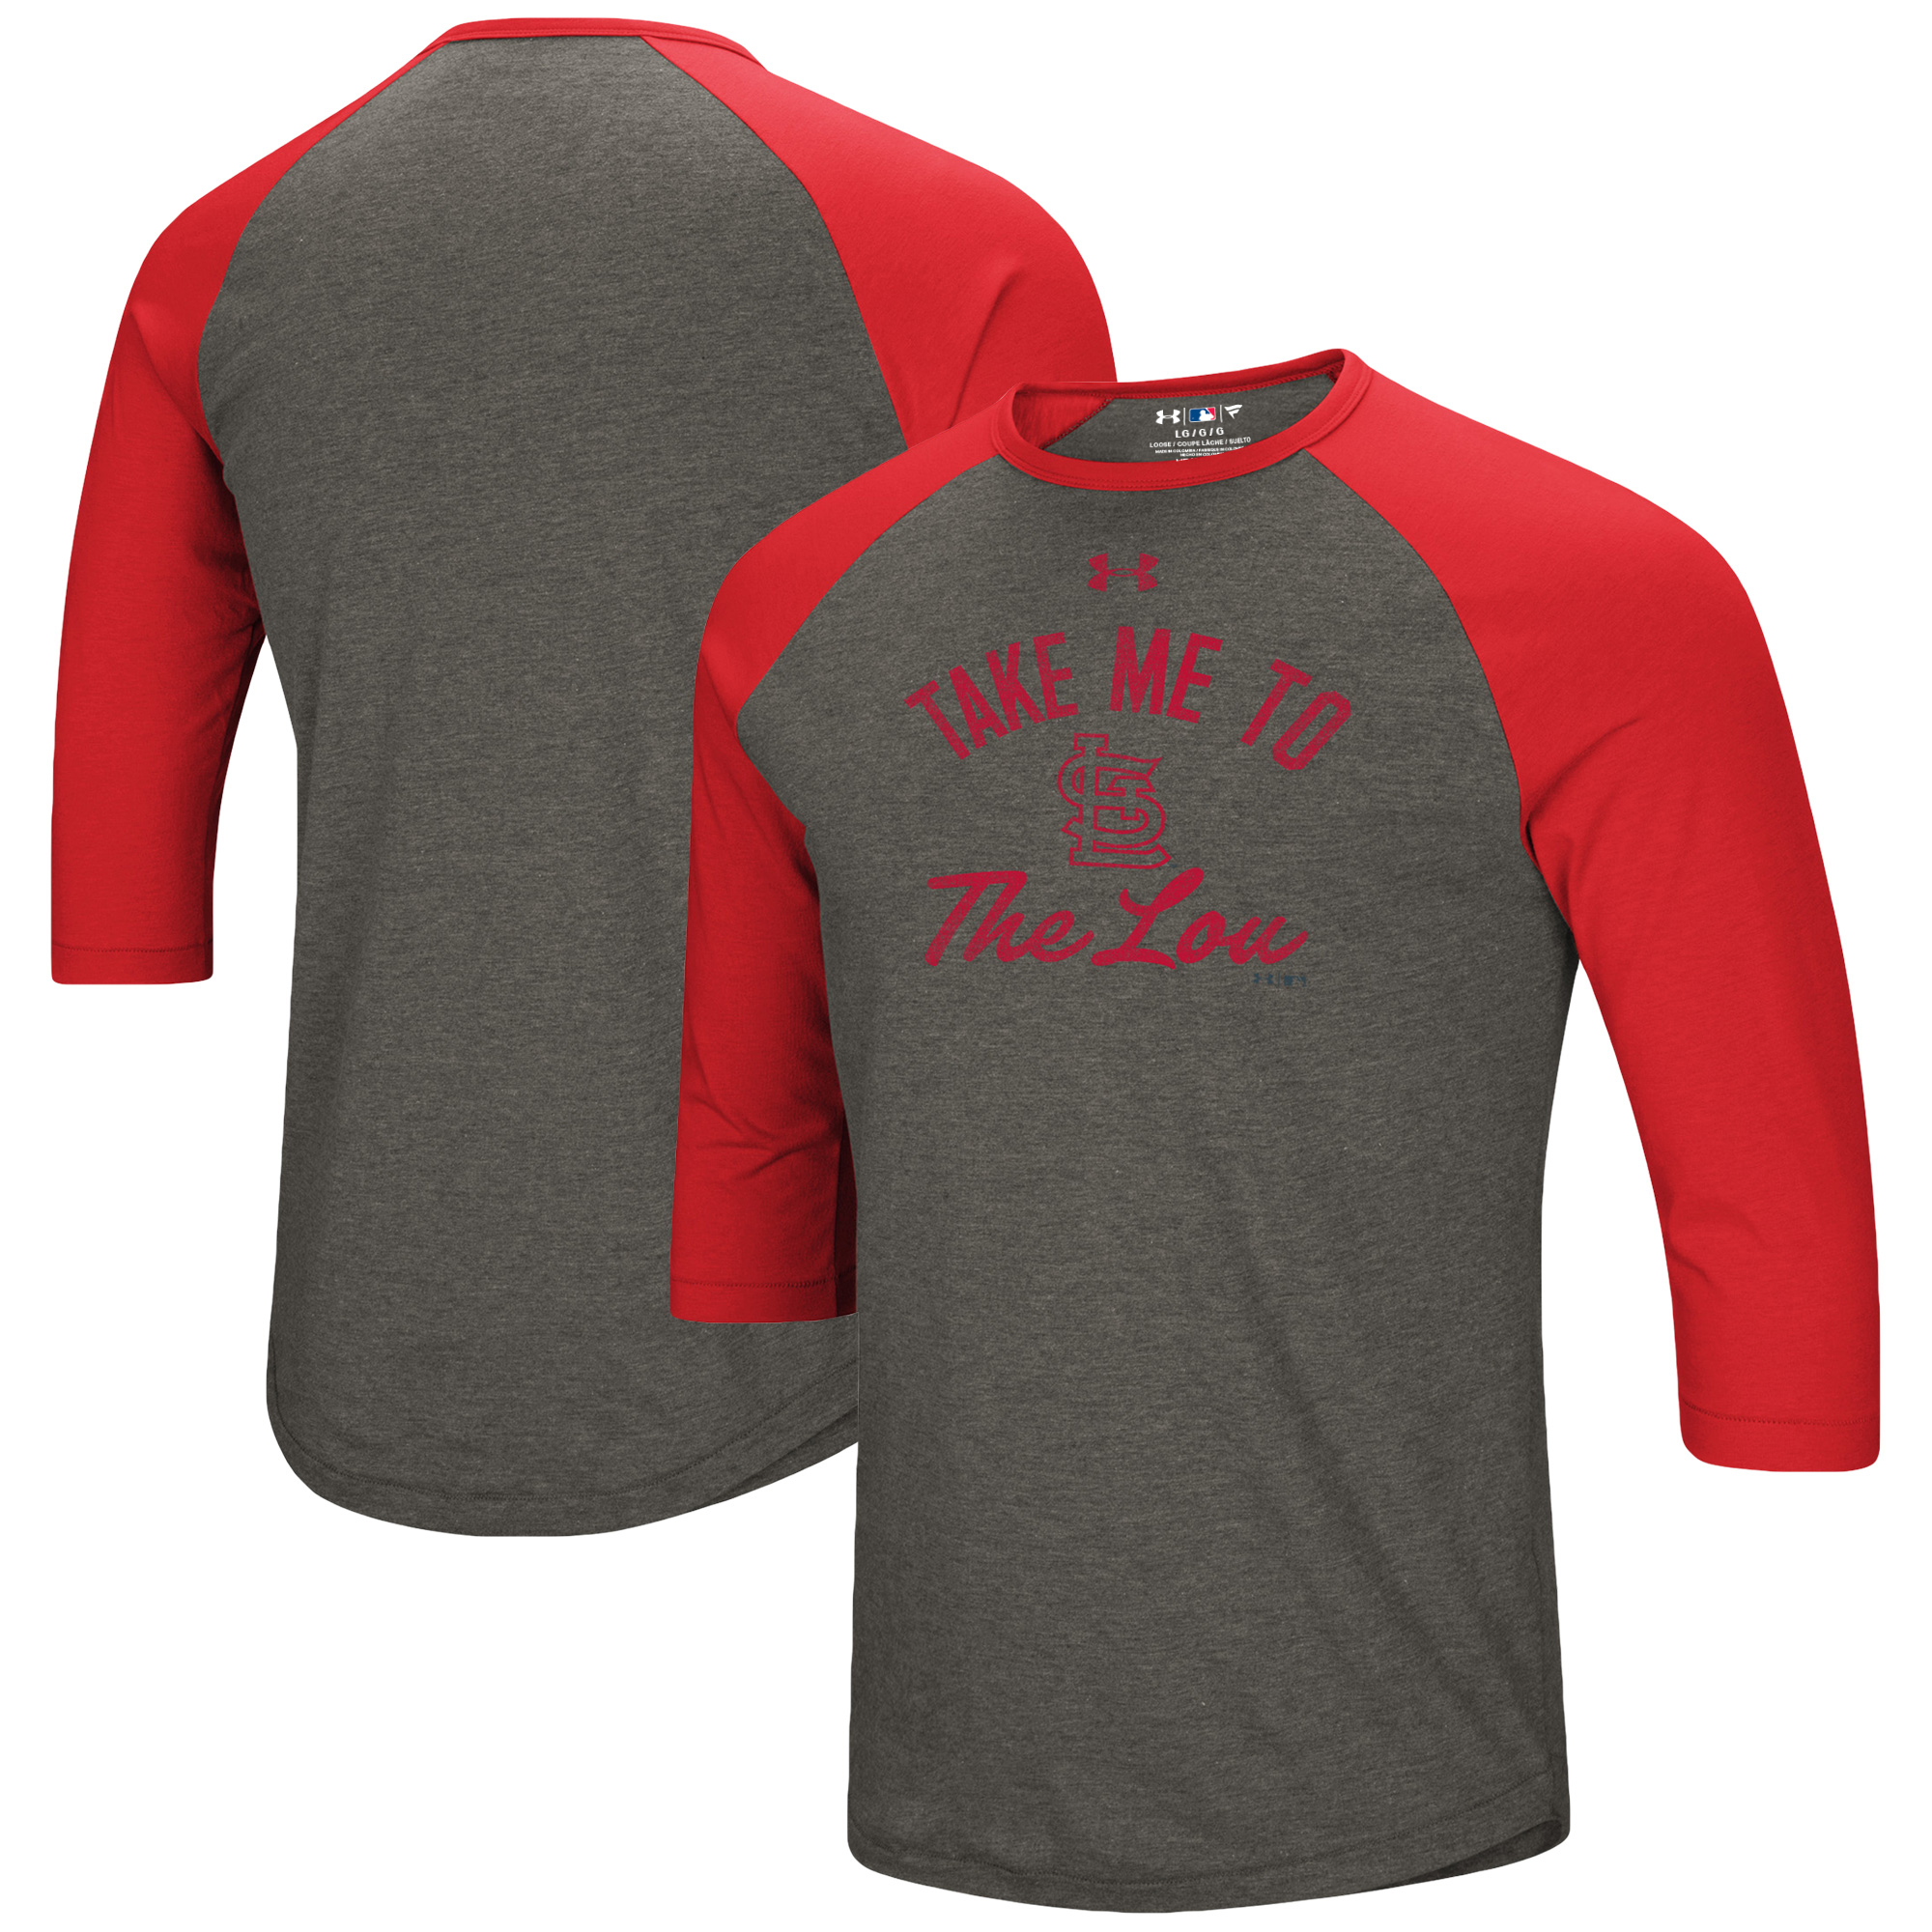 St. Louis Cardinals Under Armour Heritage Performance Tri-Blend Raglan 3/4-Sleeve T-Shirt - Heathered Gray/Red